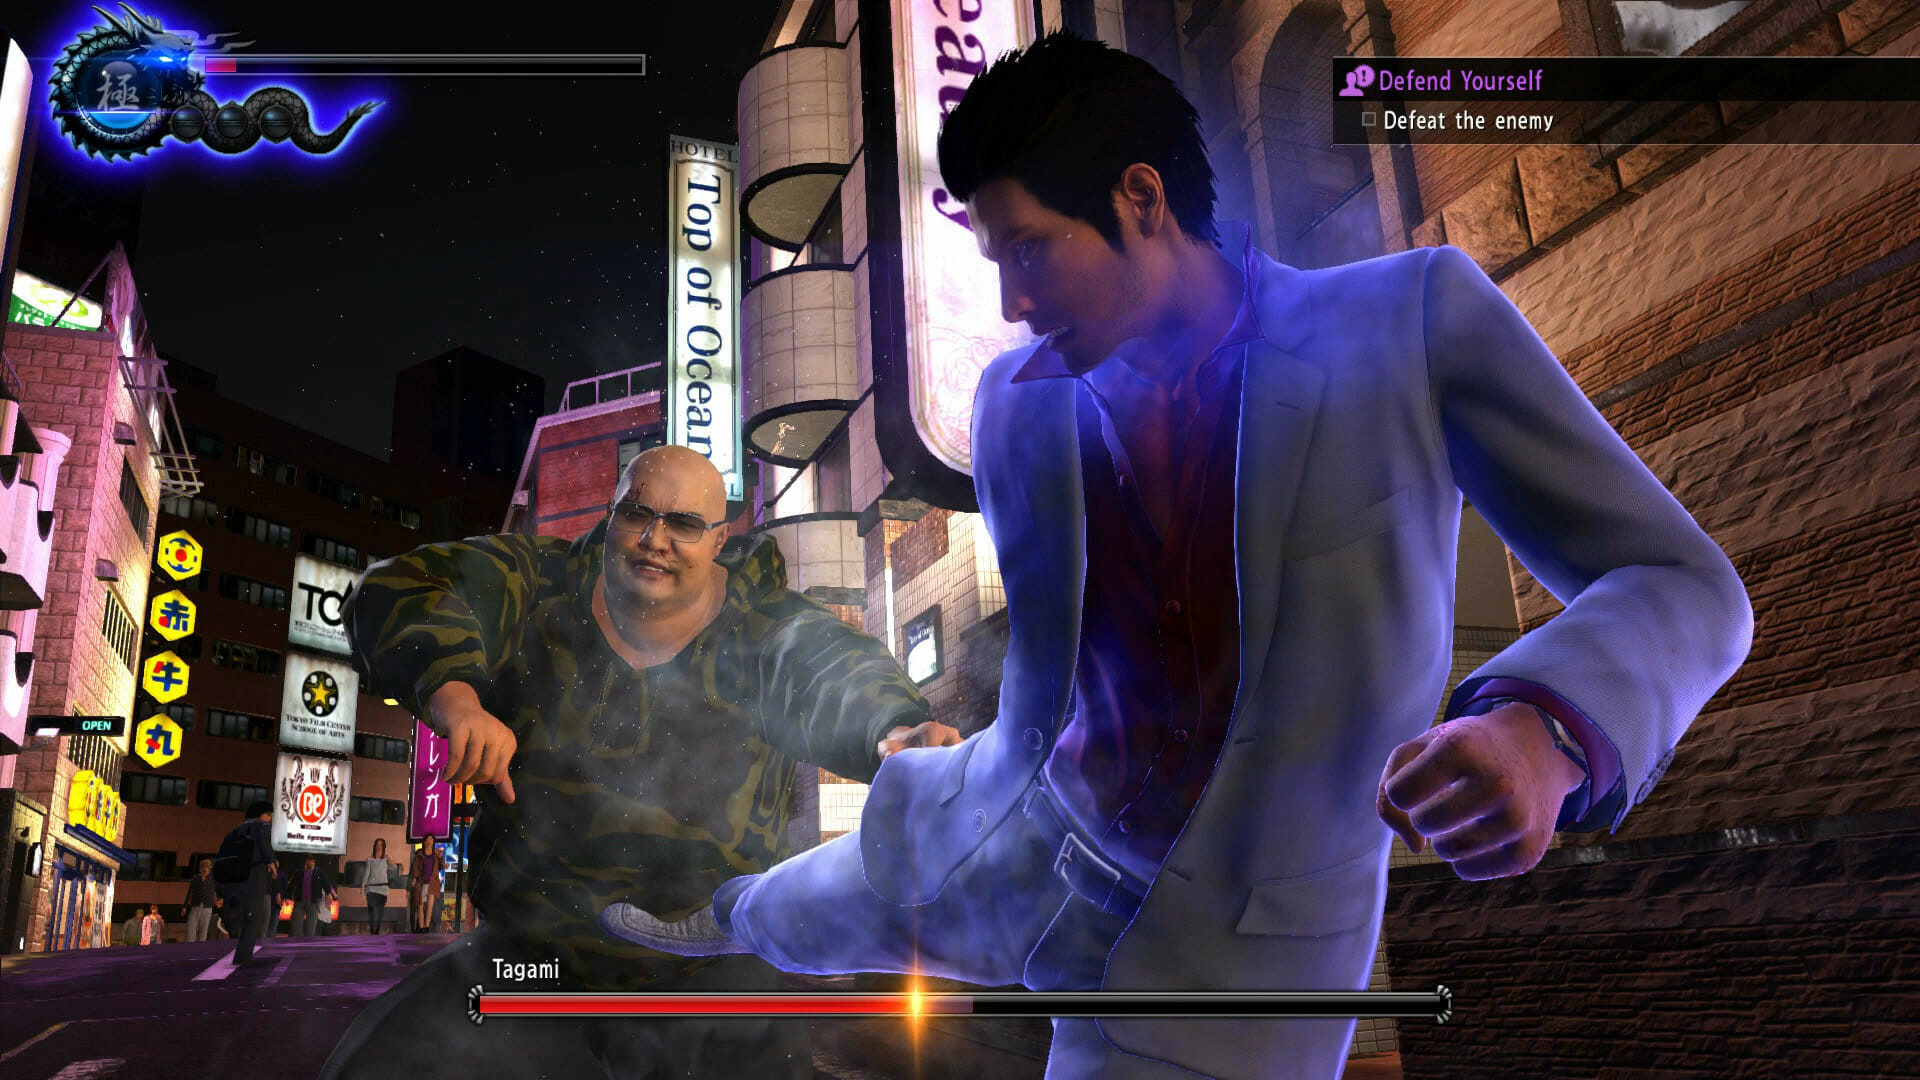 yakuza 6 cracked